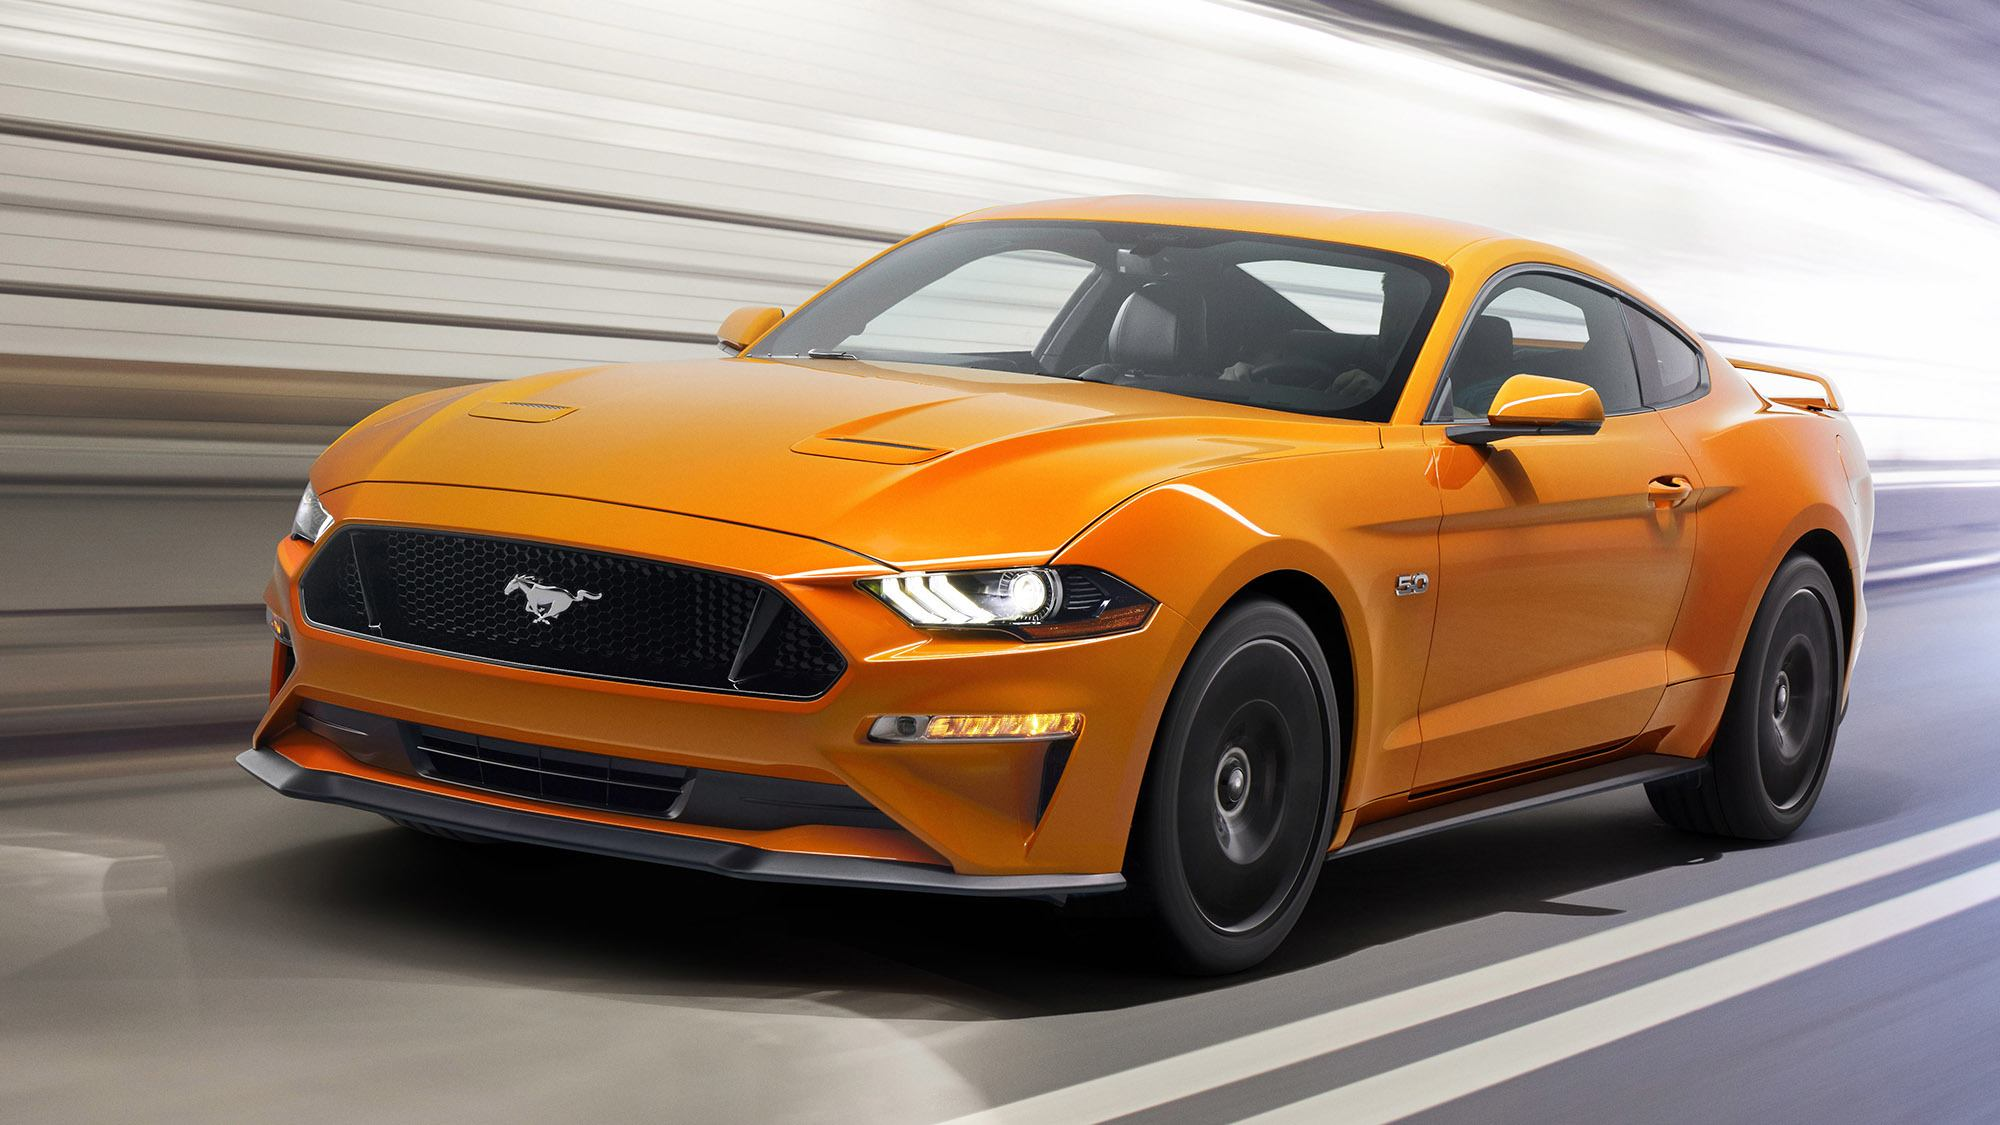 new-ford-mustang-v8-gt-with-performace-pack-in-orange-fury-1-1